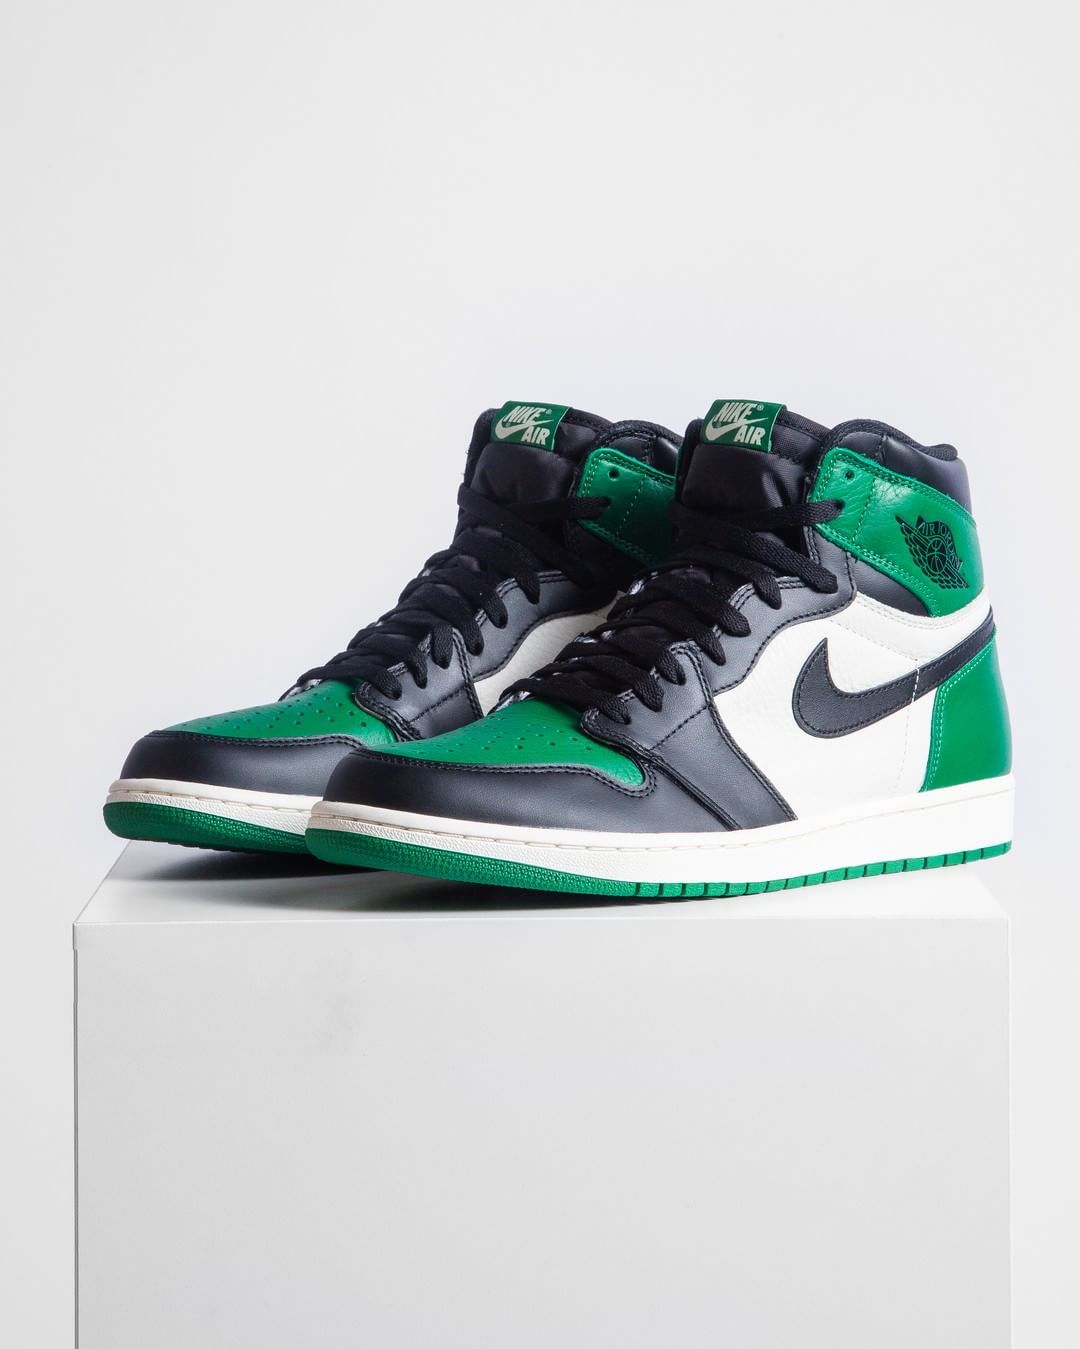 the latest 8d7e2 5e407  Jordan Retro 1 High OG  Pine Green  Available Now In-Store and Online!